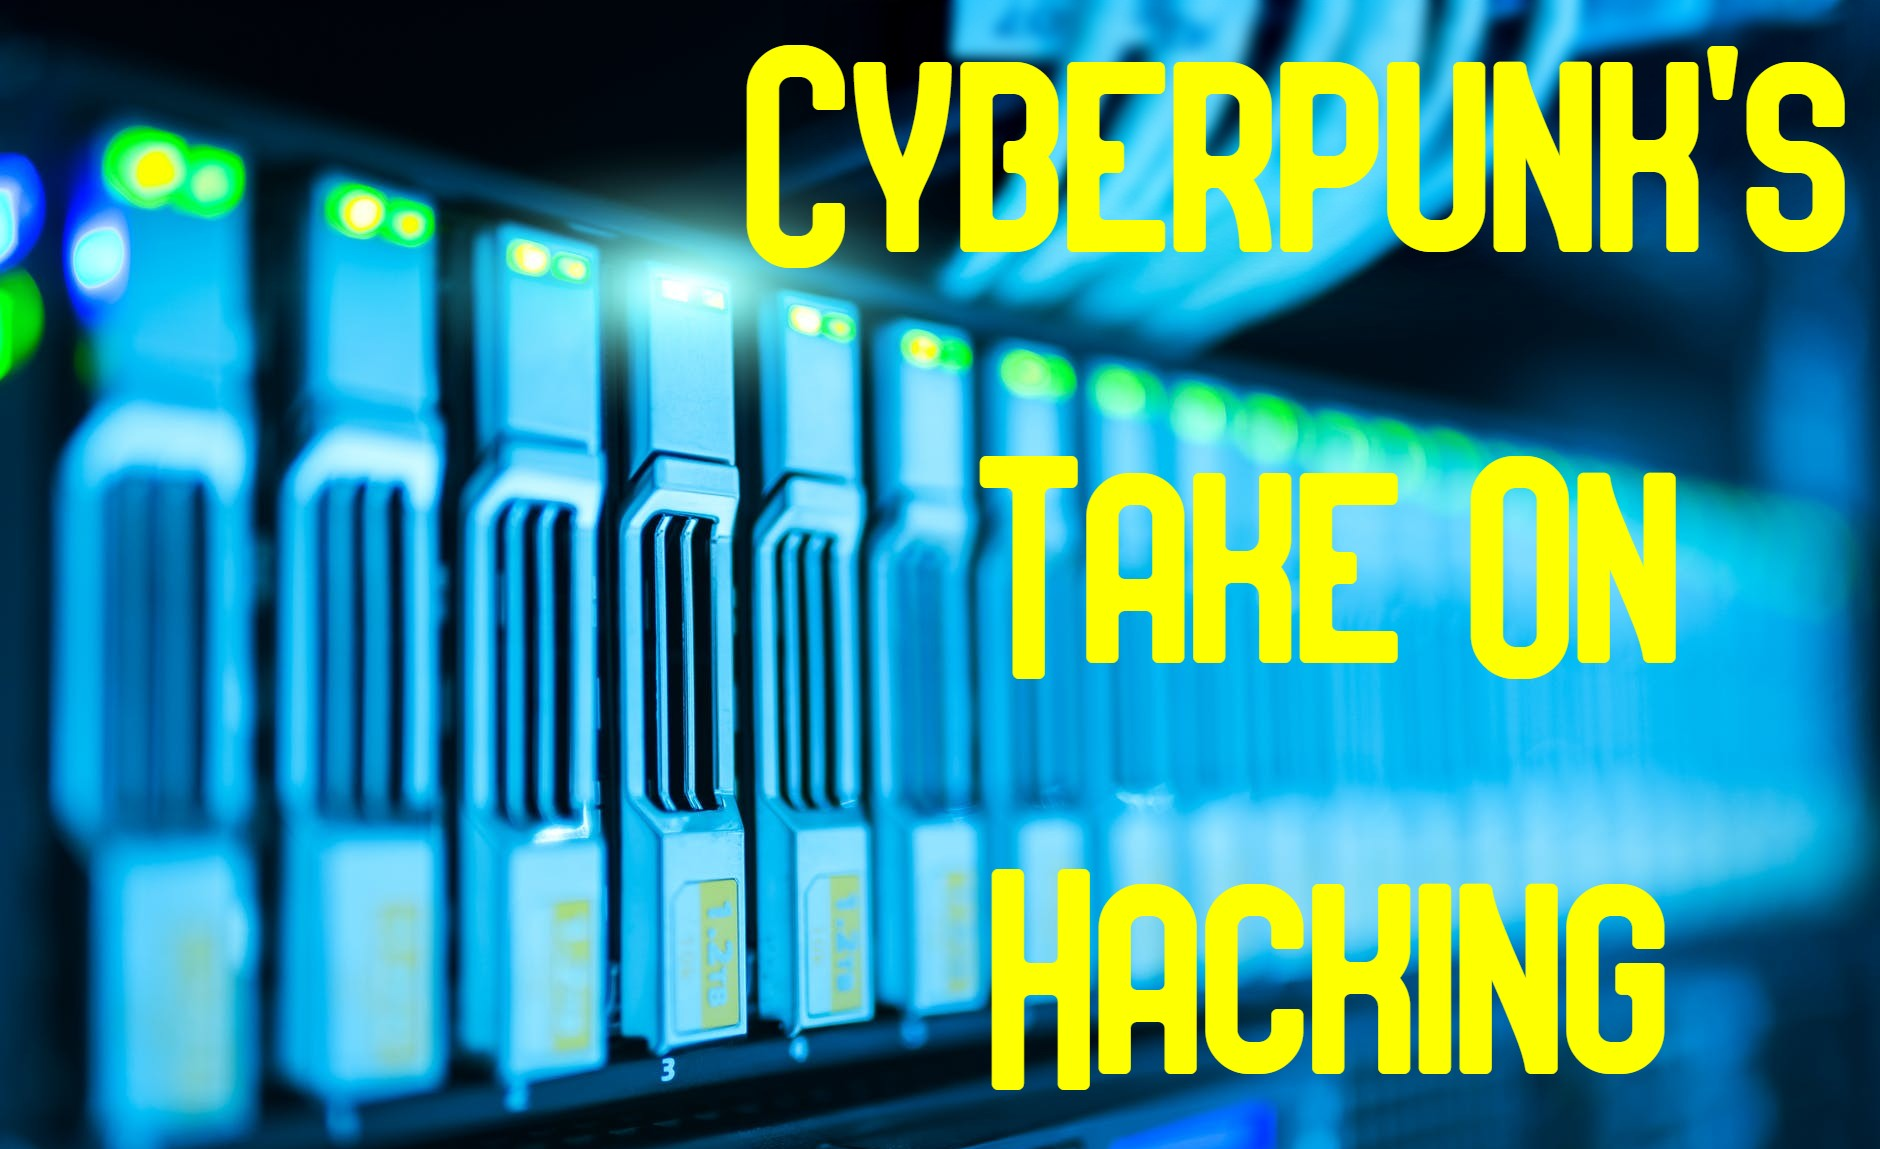 computer server being hacked stating cyberpunk's take on hacking